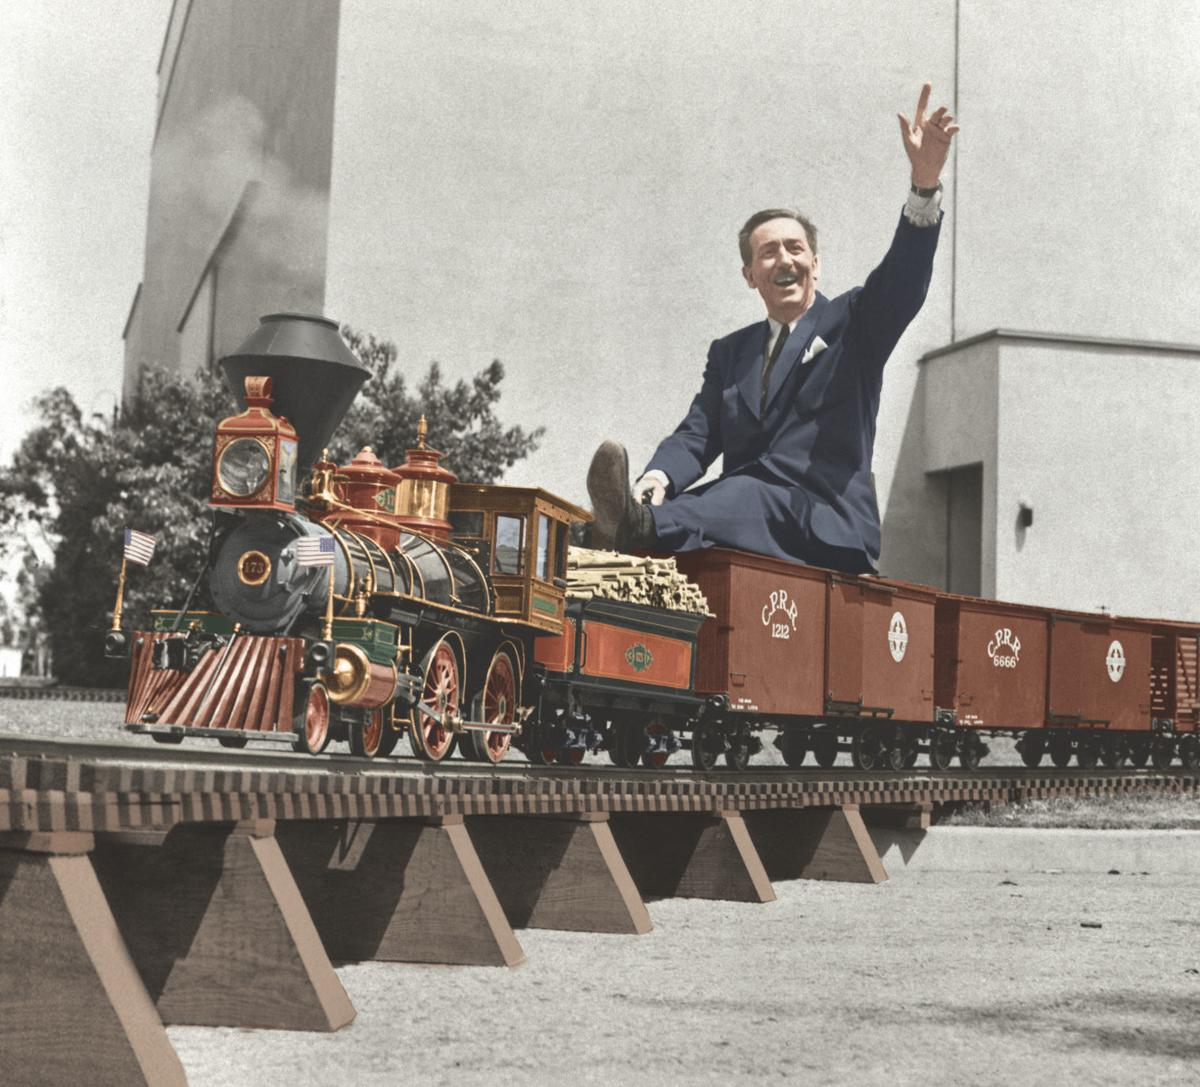 1 55 20 Magical Facts You Might Not Have Known About Walt Disney